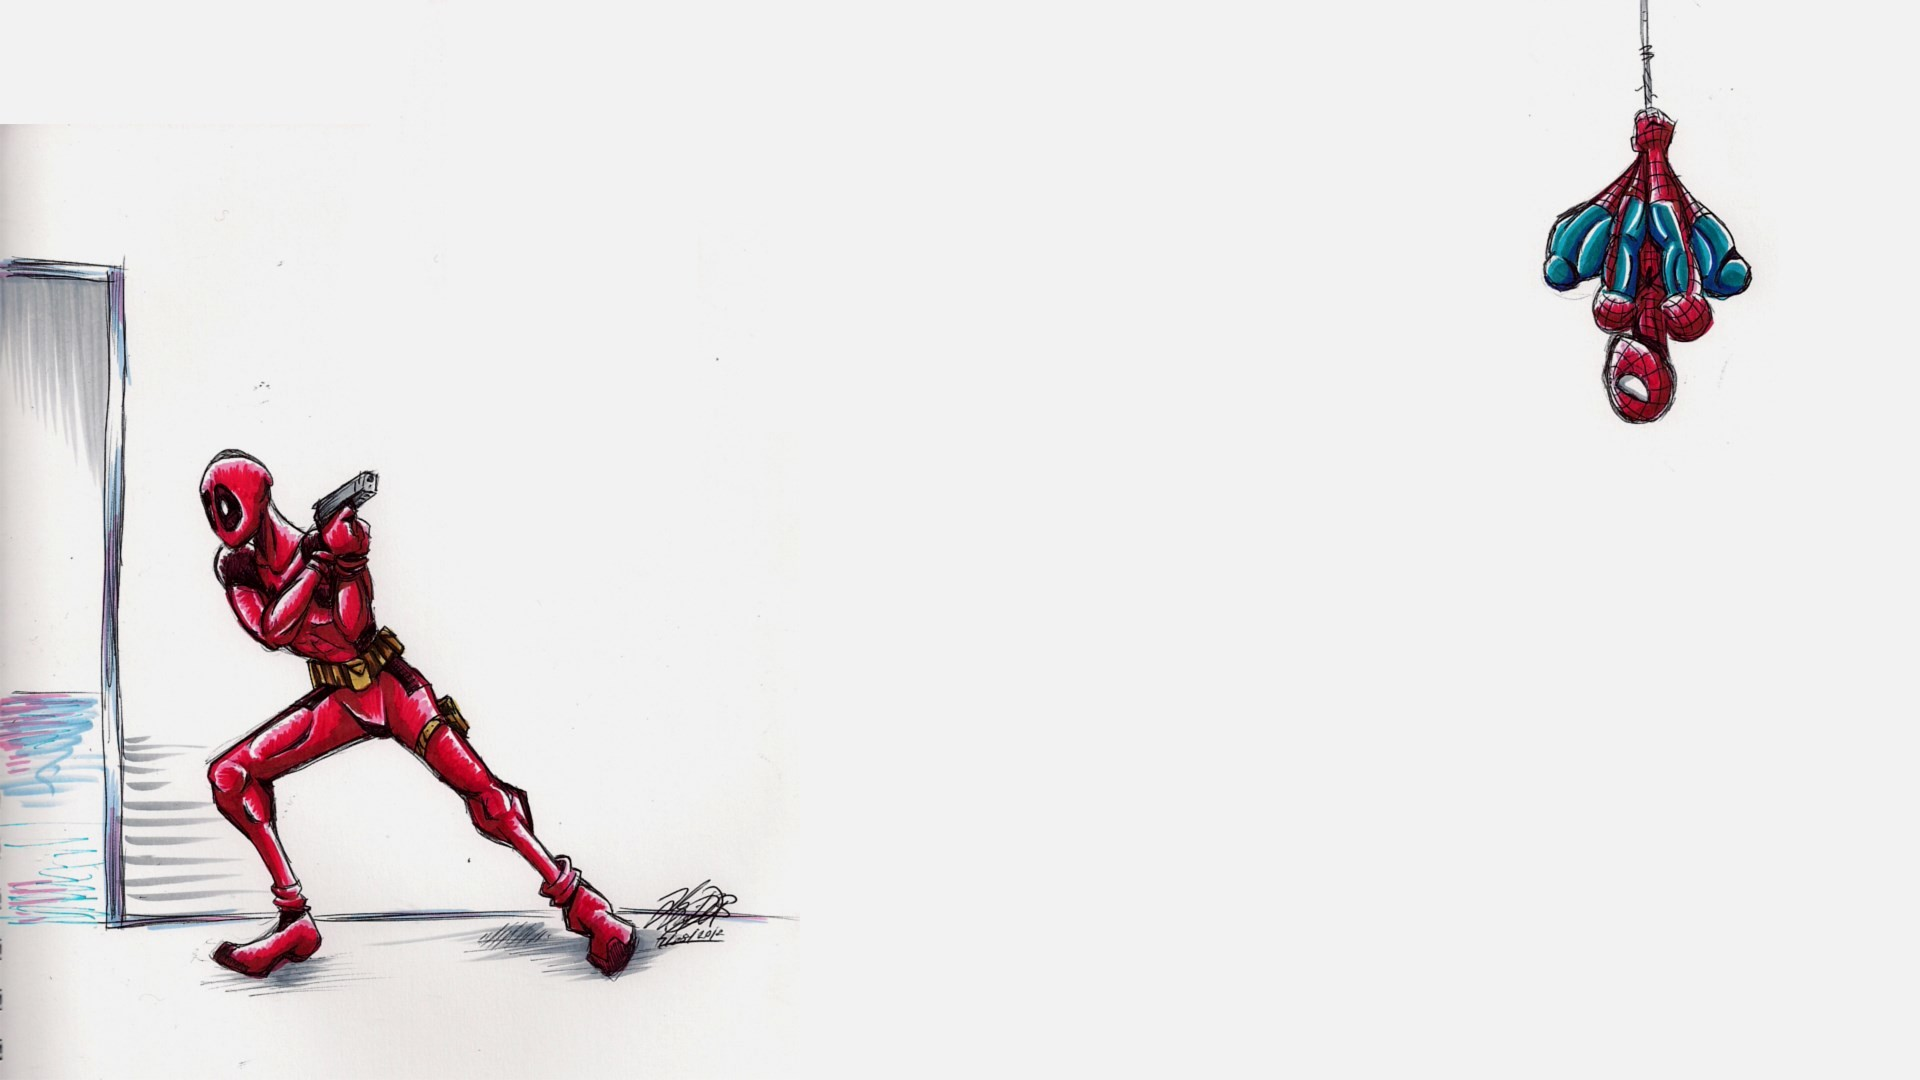 Cool deadpool wallpaper 74 images for Deadpool wallpaper 1920x1080